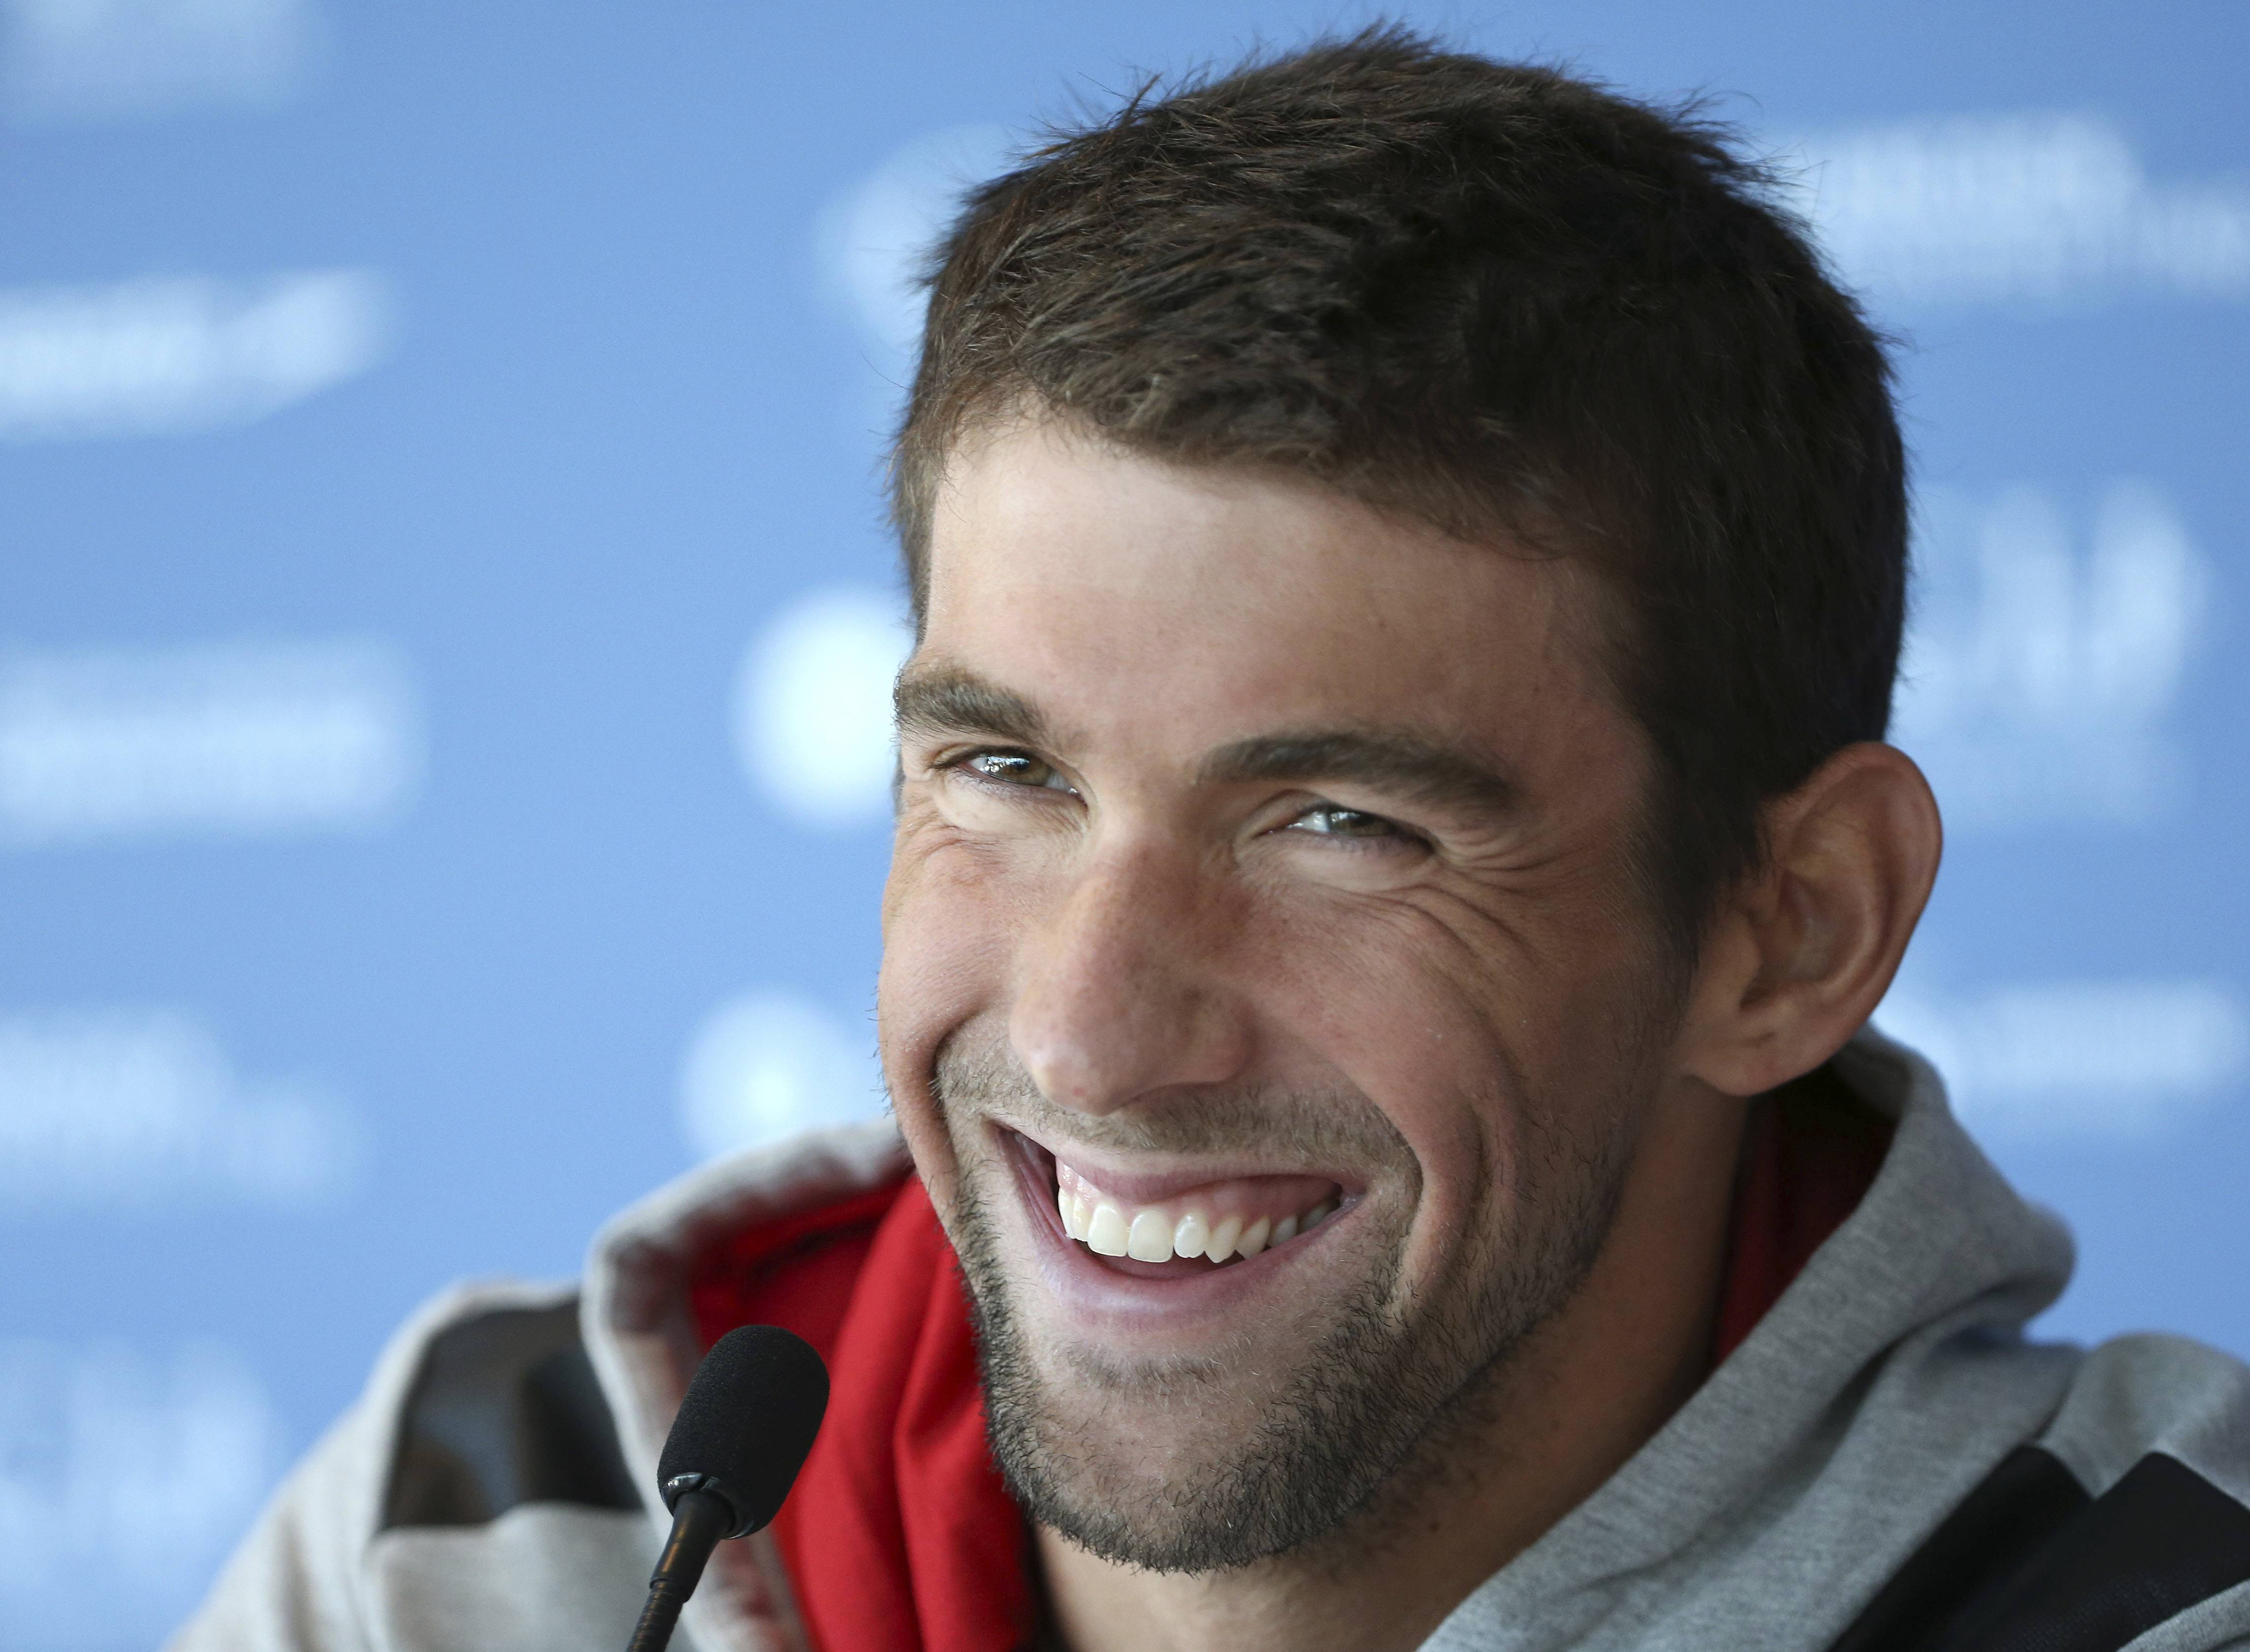 U.S. swimmer Michael Phelps, seen in this file photo from a month ago, was arrested on a DUI charge in Maryland Tuesday morning.